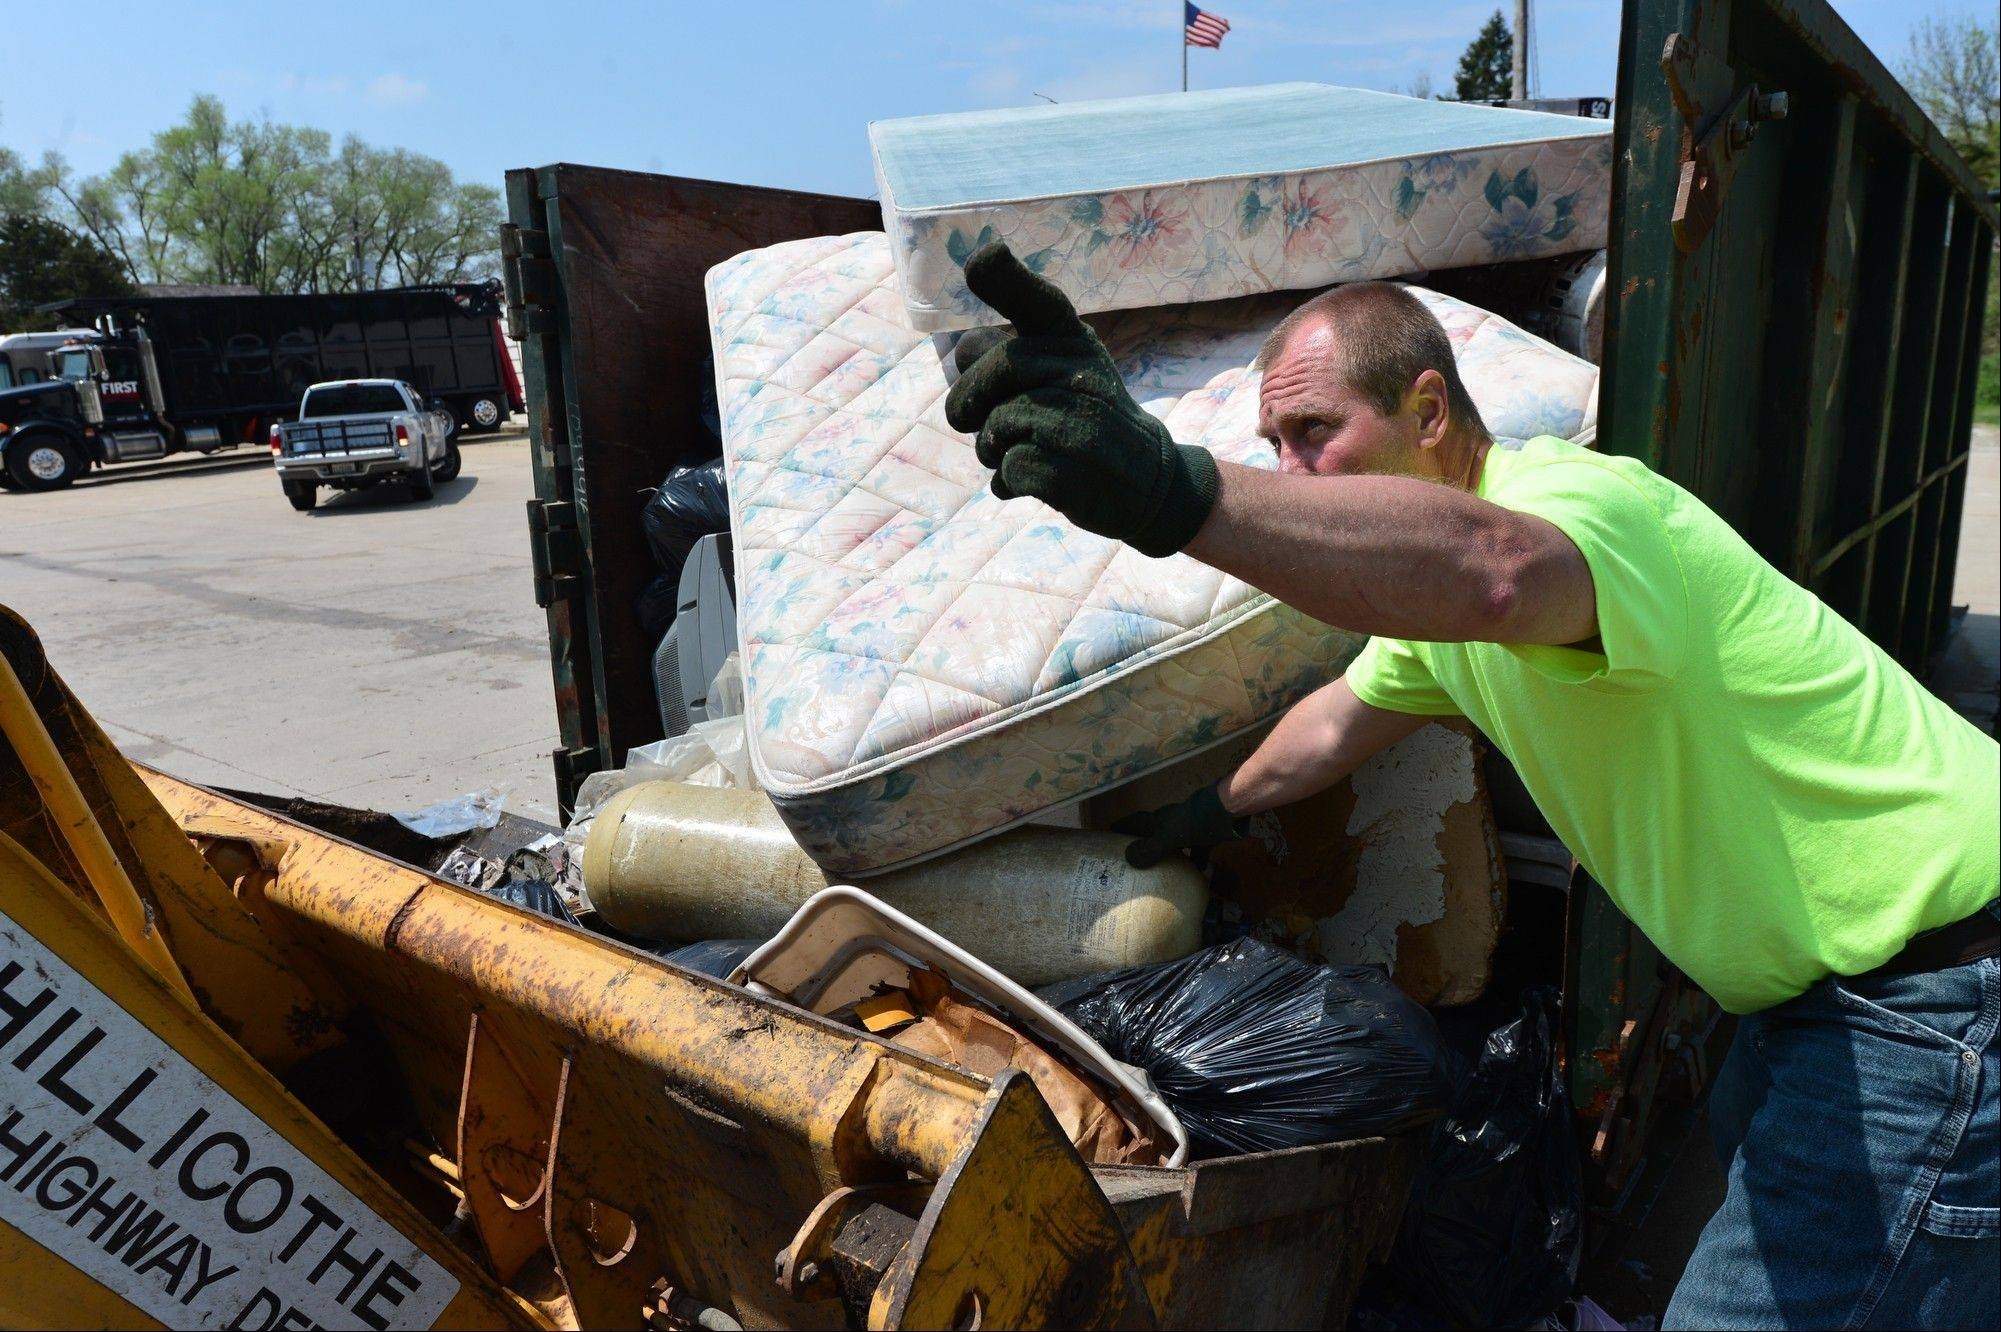 Chillicothe worker Kevin Conarro motions to driver Jason Schrock as they handle flood debris dumped by homeowners in a dumpster outside of the Rome Post Office in Rome, Ill., Thursday, May 2, 2013.